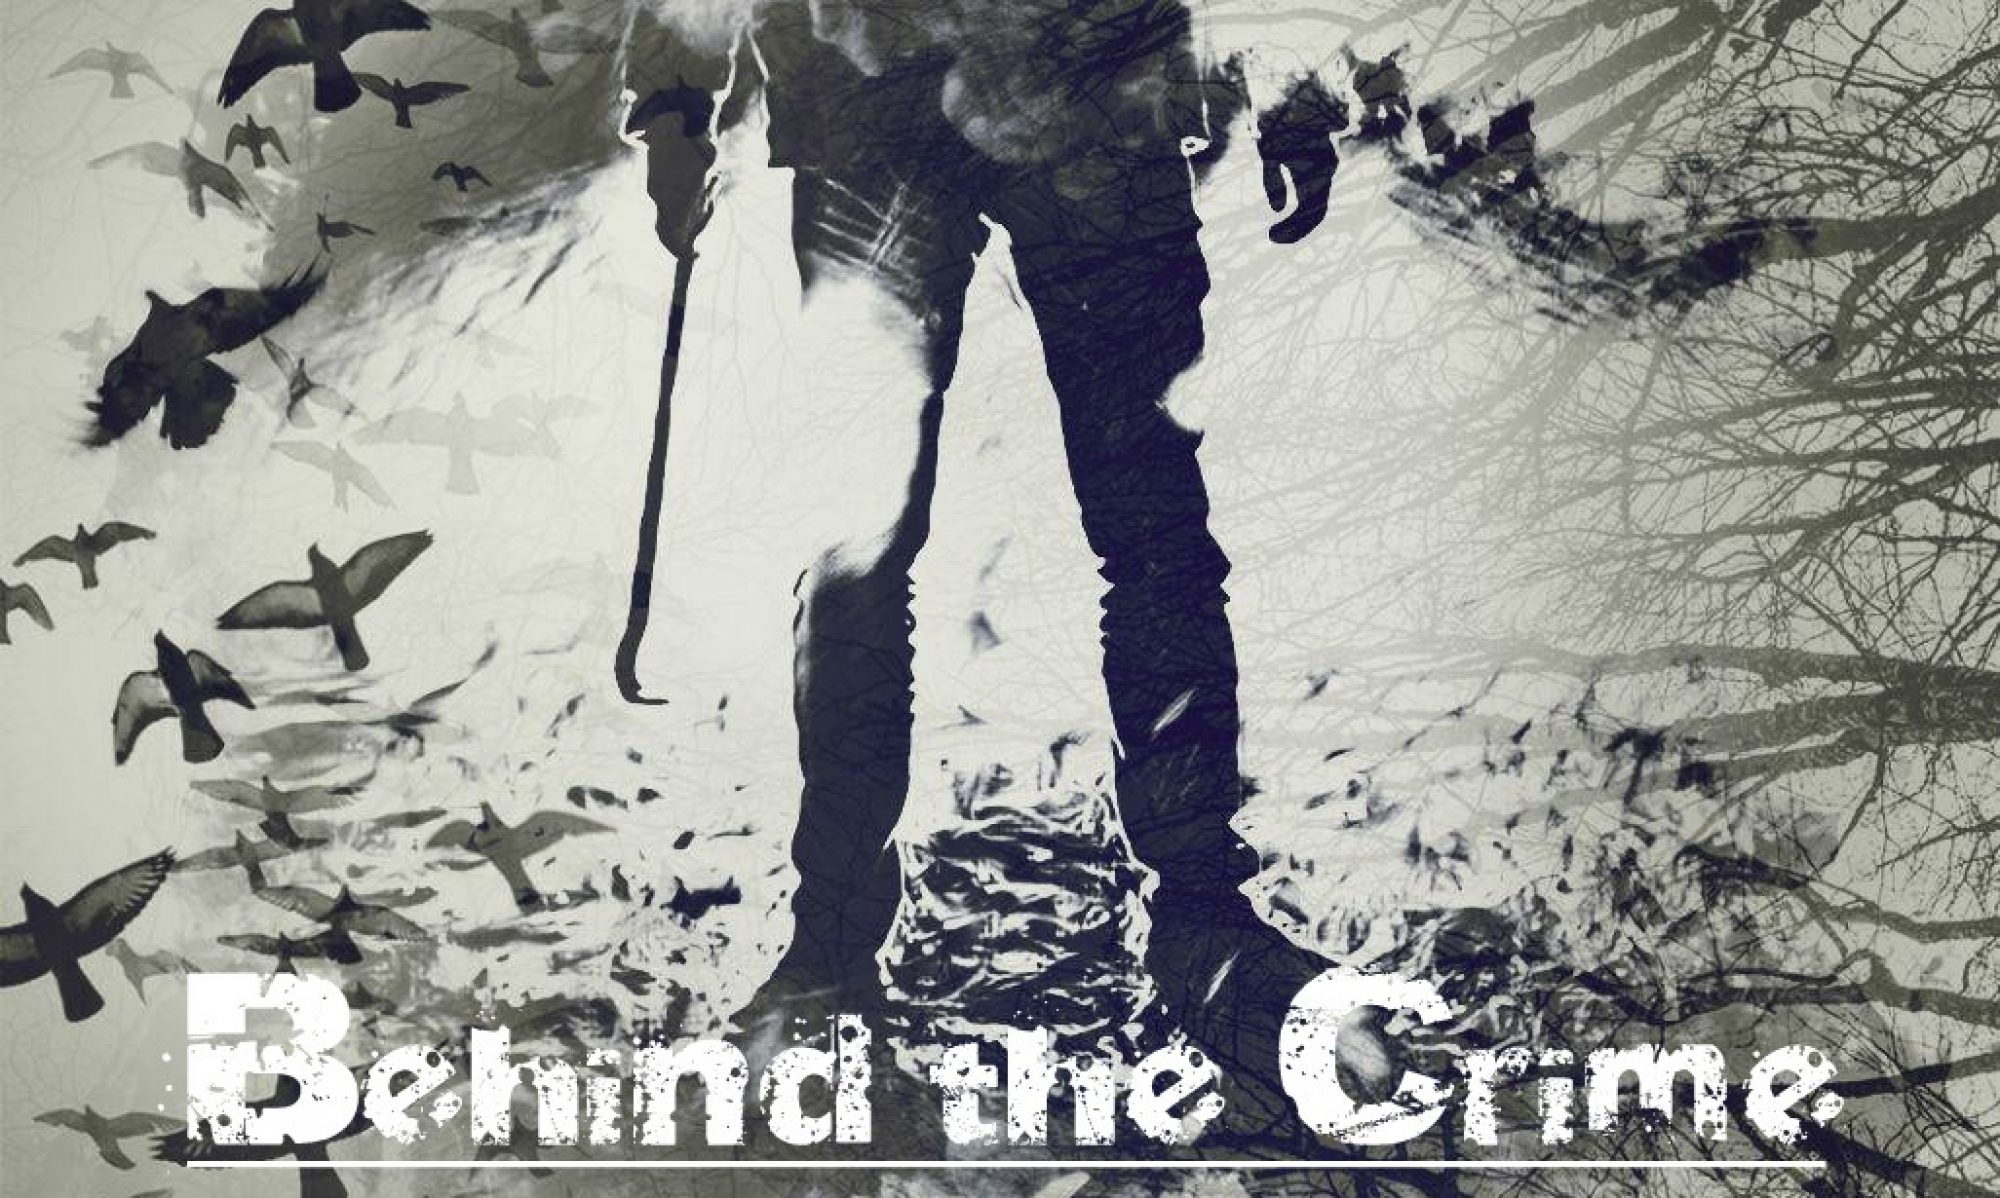 Behind the Crime